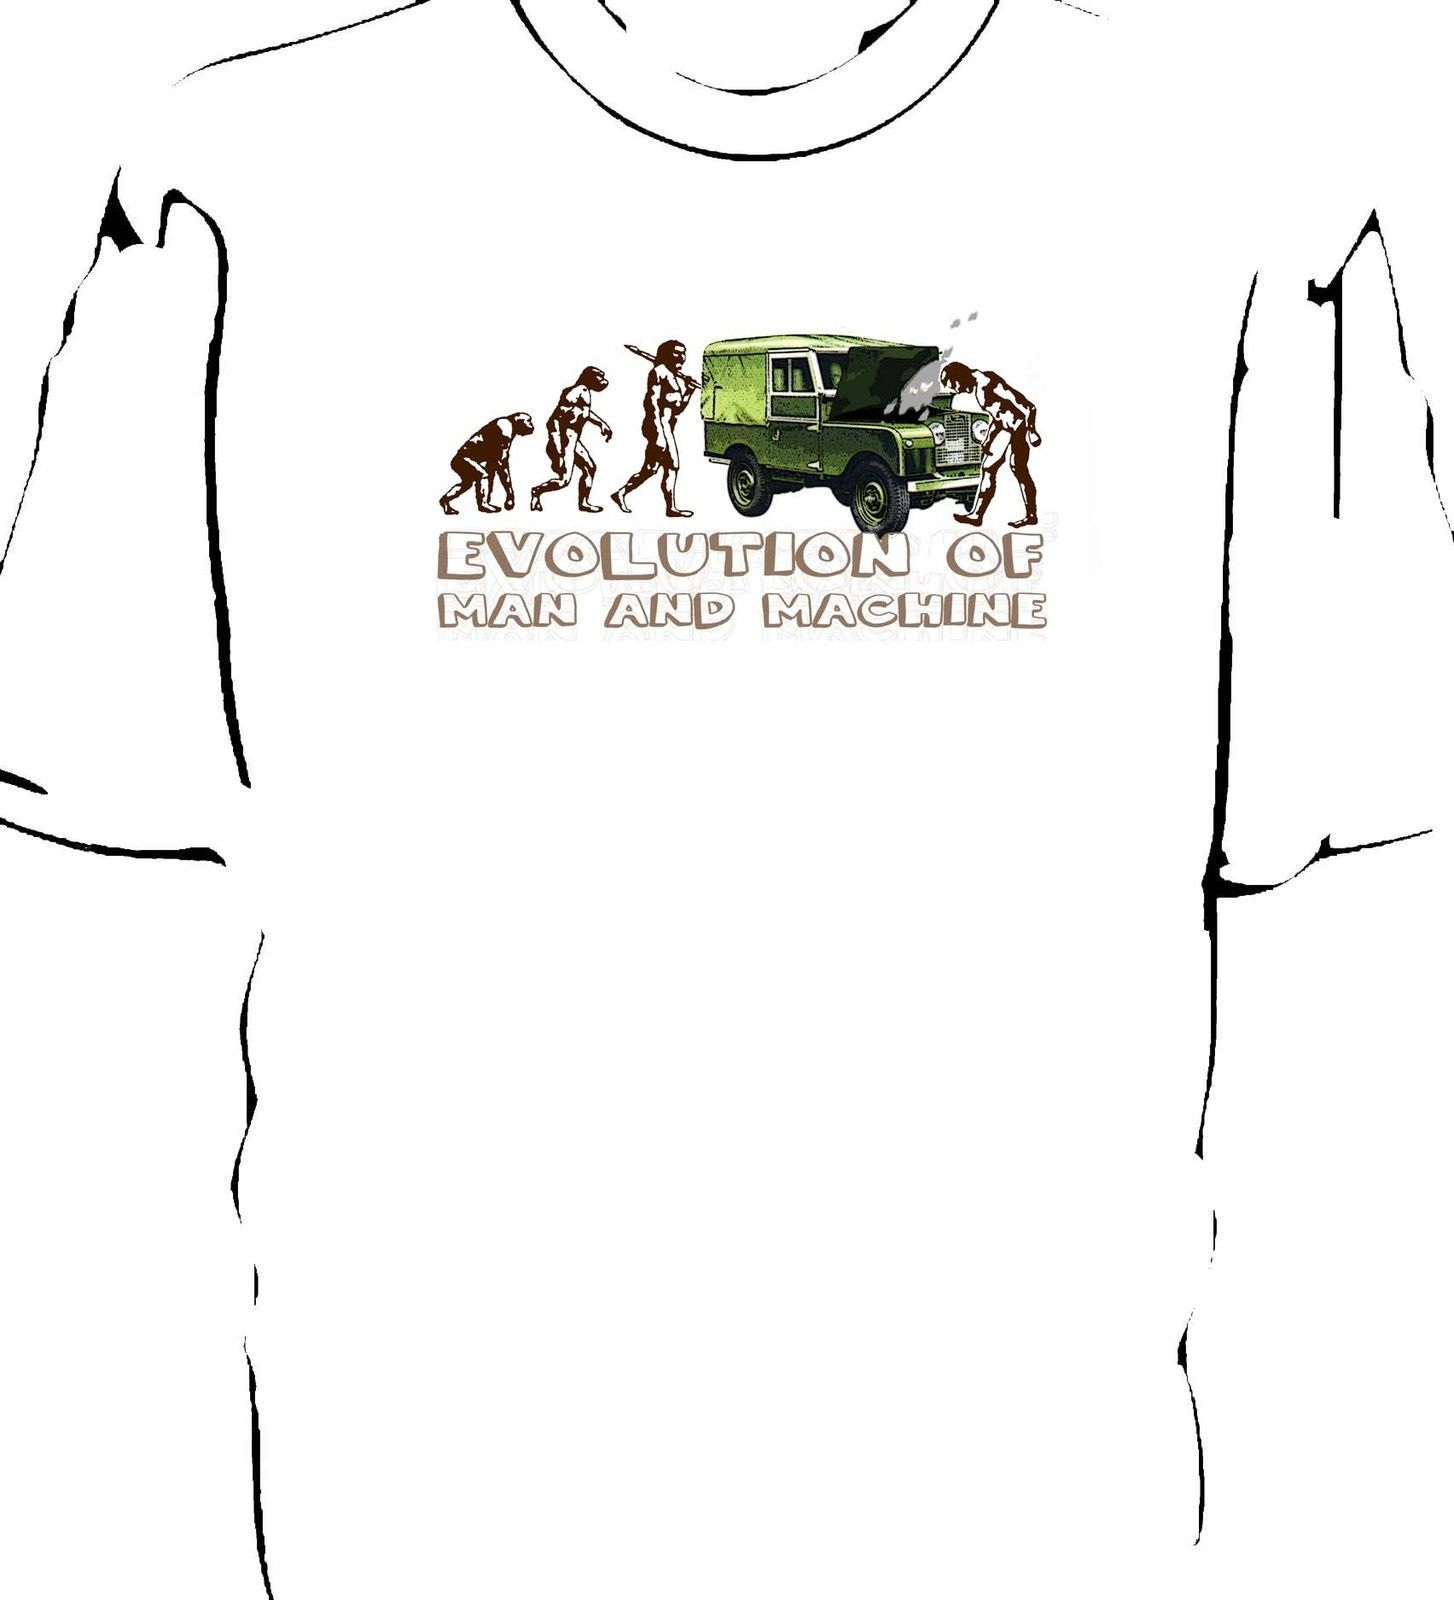 Land Rover series 1 Evolution of Man breakdown t-shirt